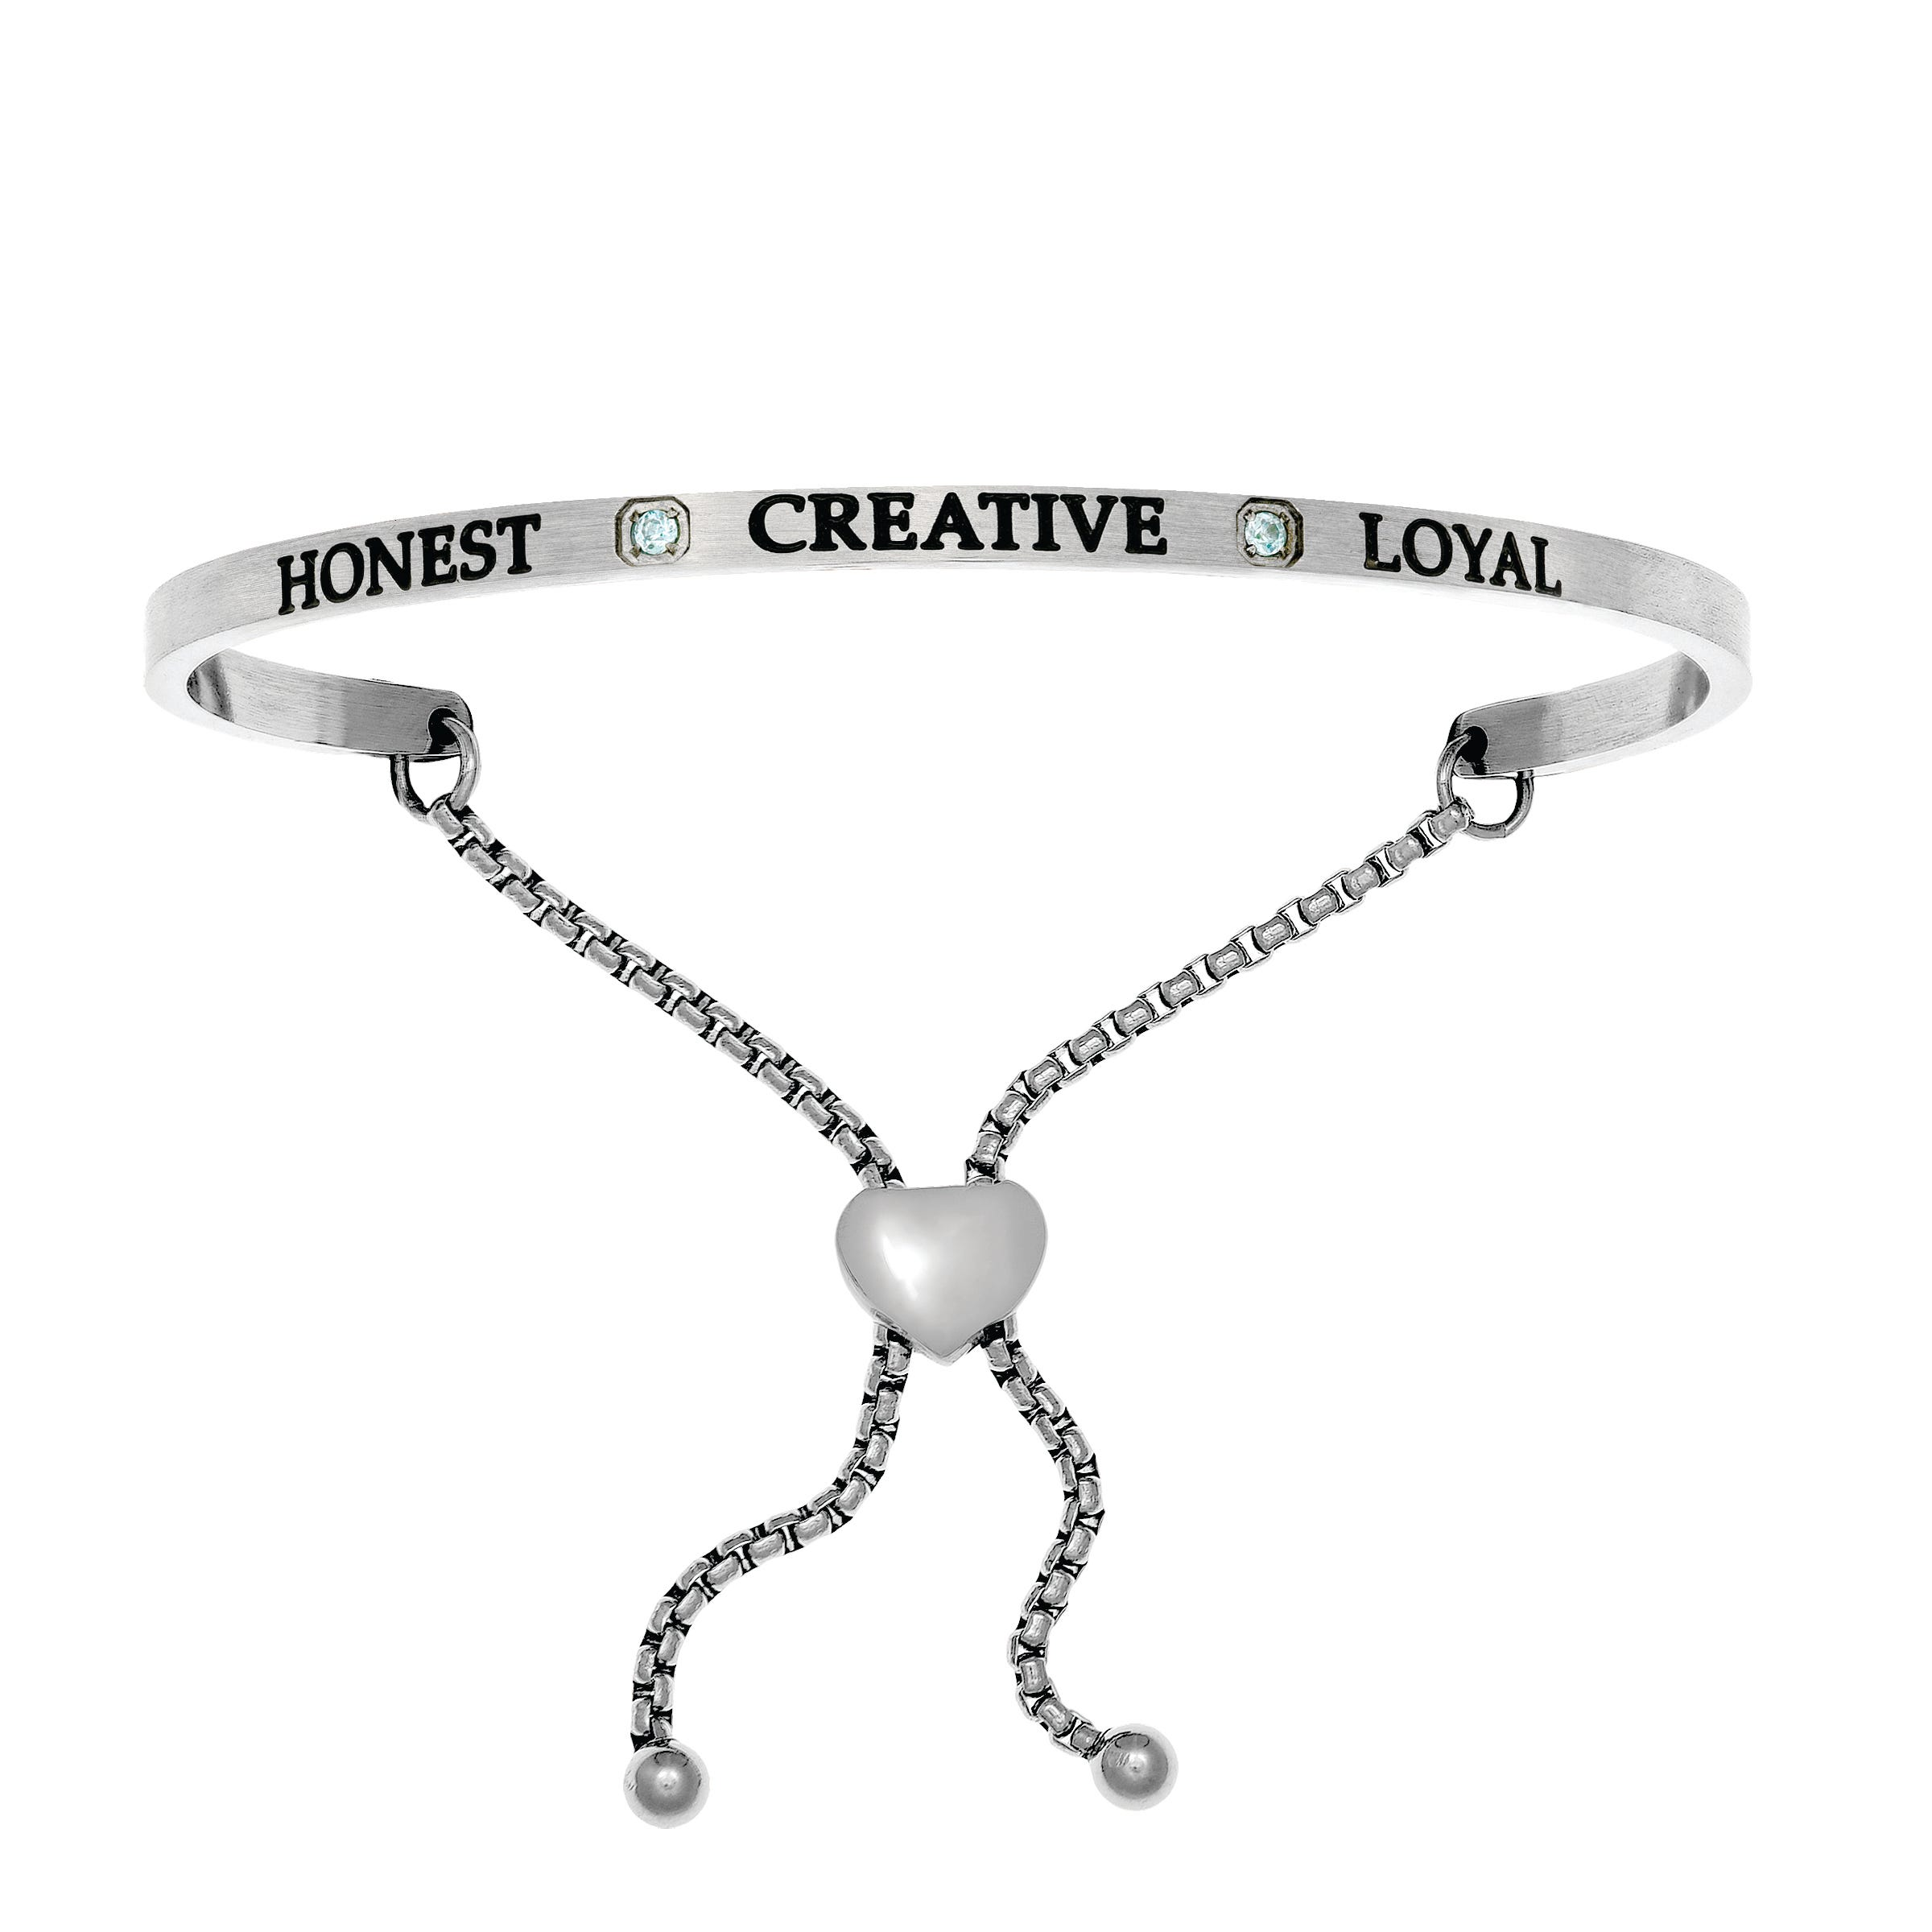 Honest & Creative March. Intuitions Bolo Bracelet in White Stainless Steel